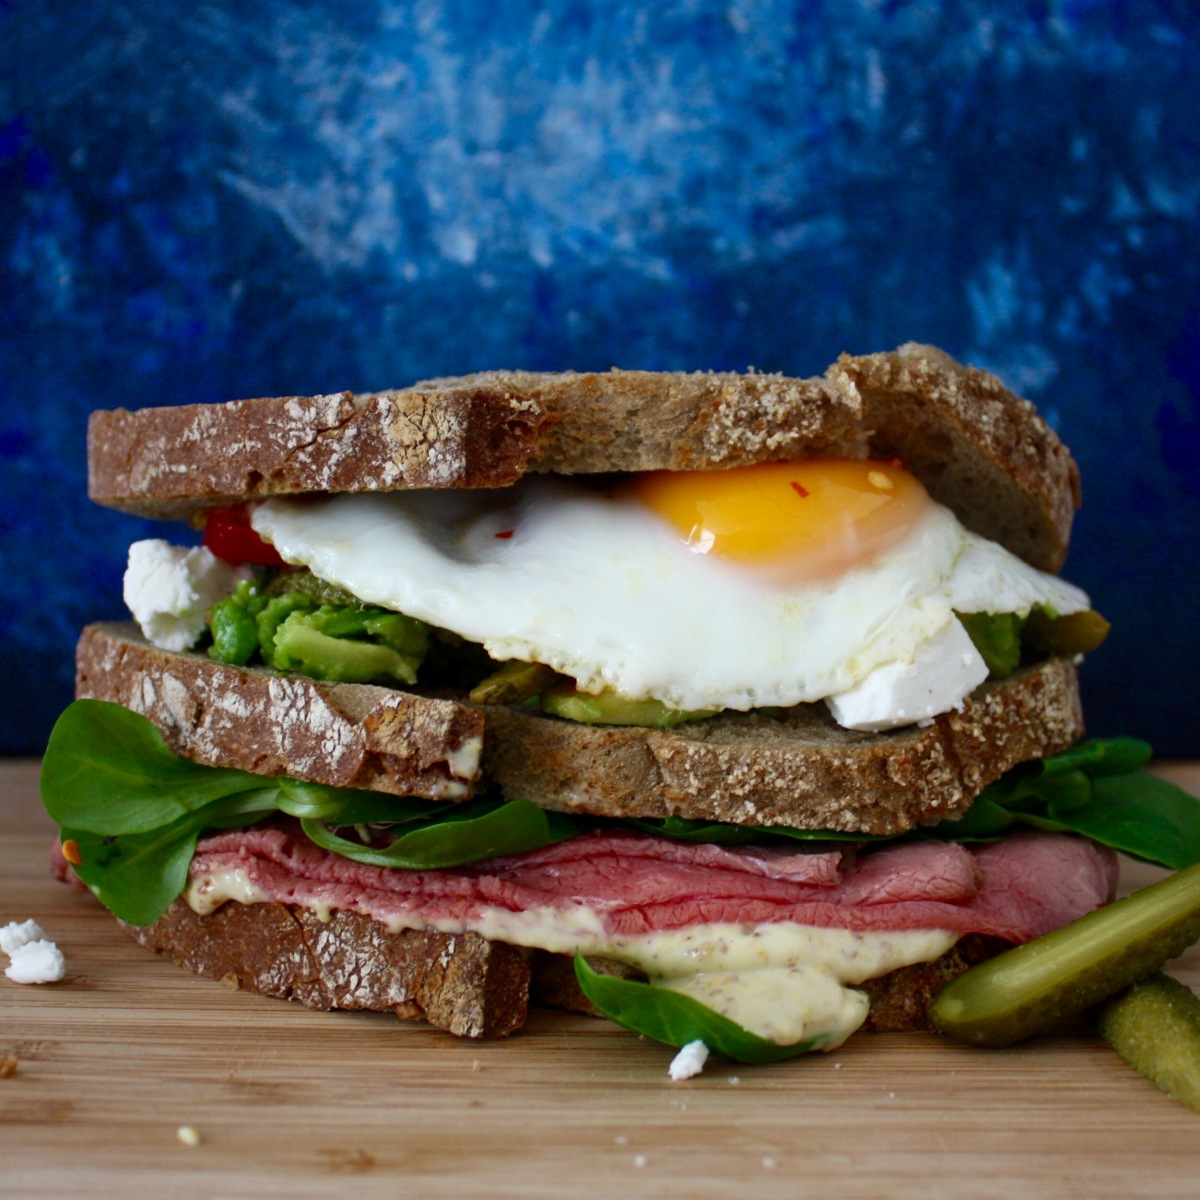 Avocado And Egg Sandwich With Tillamook Cheddar On Whole ...